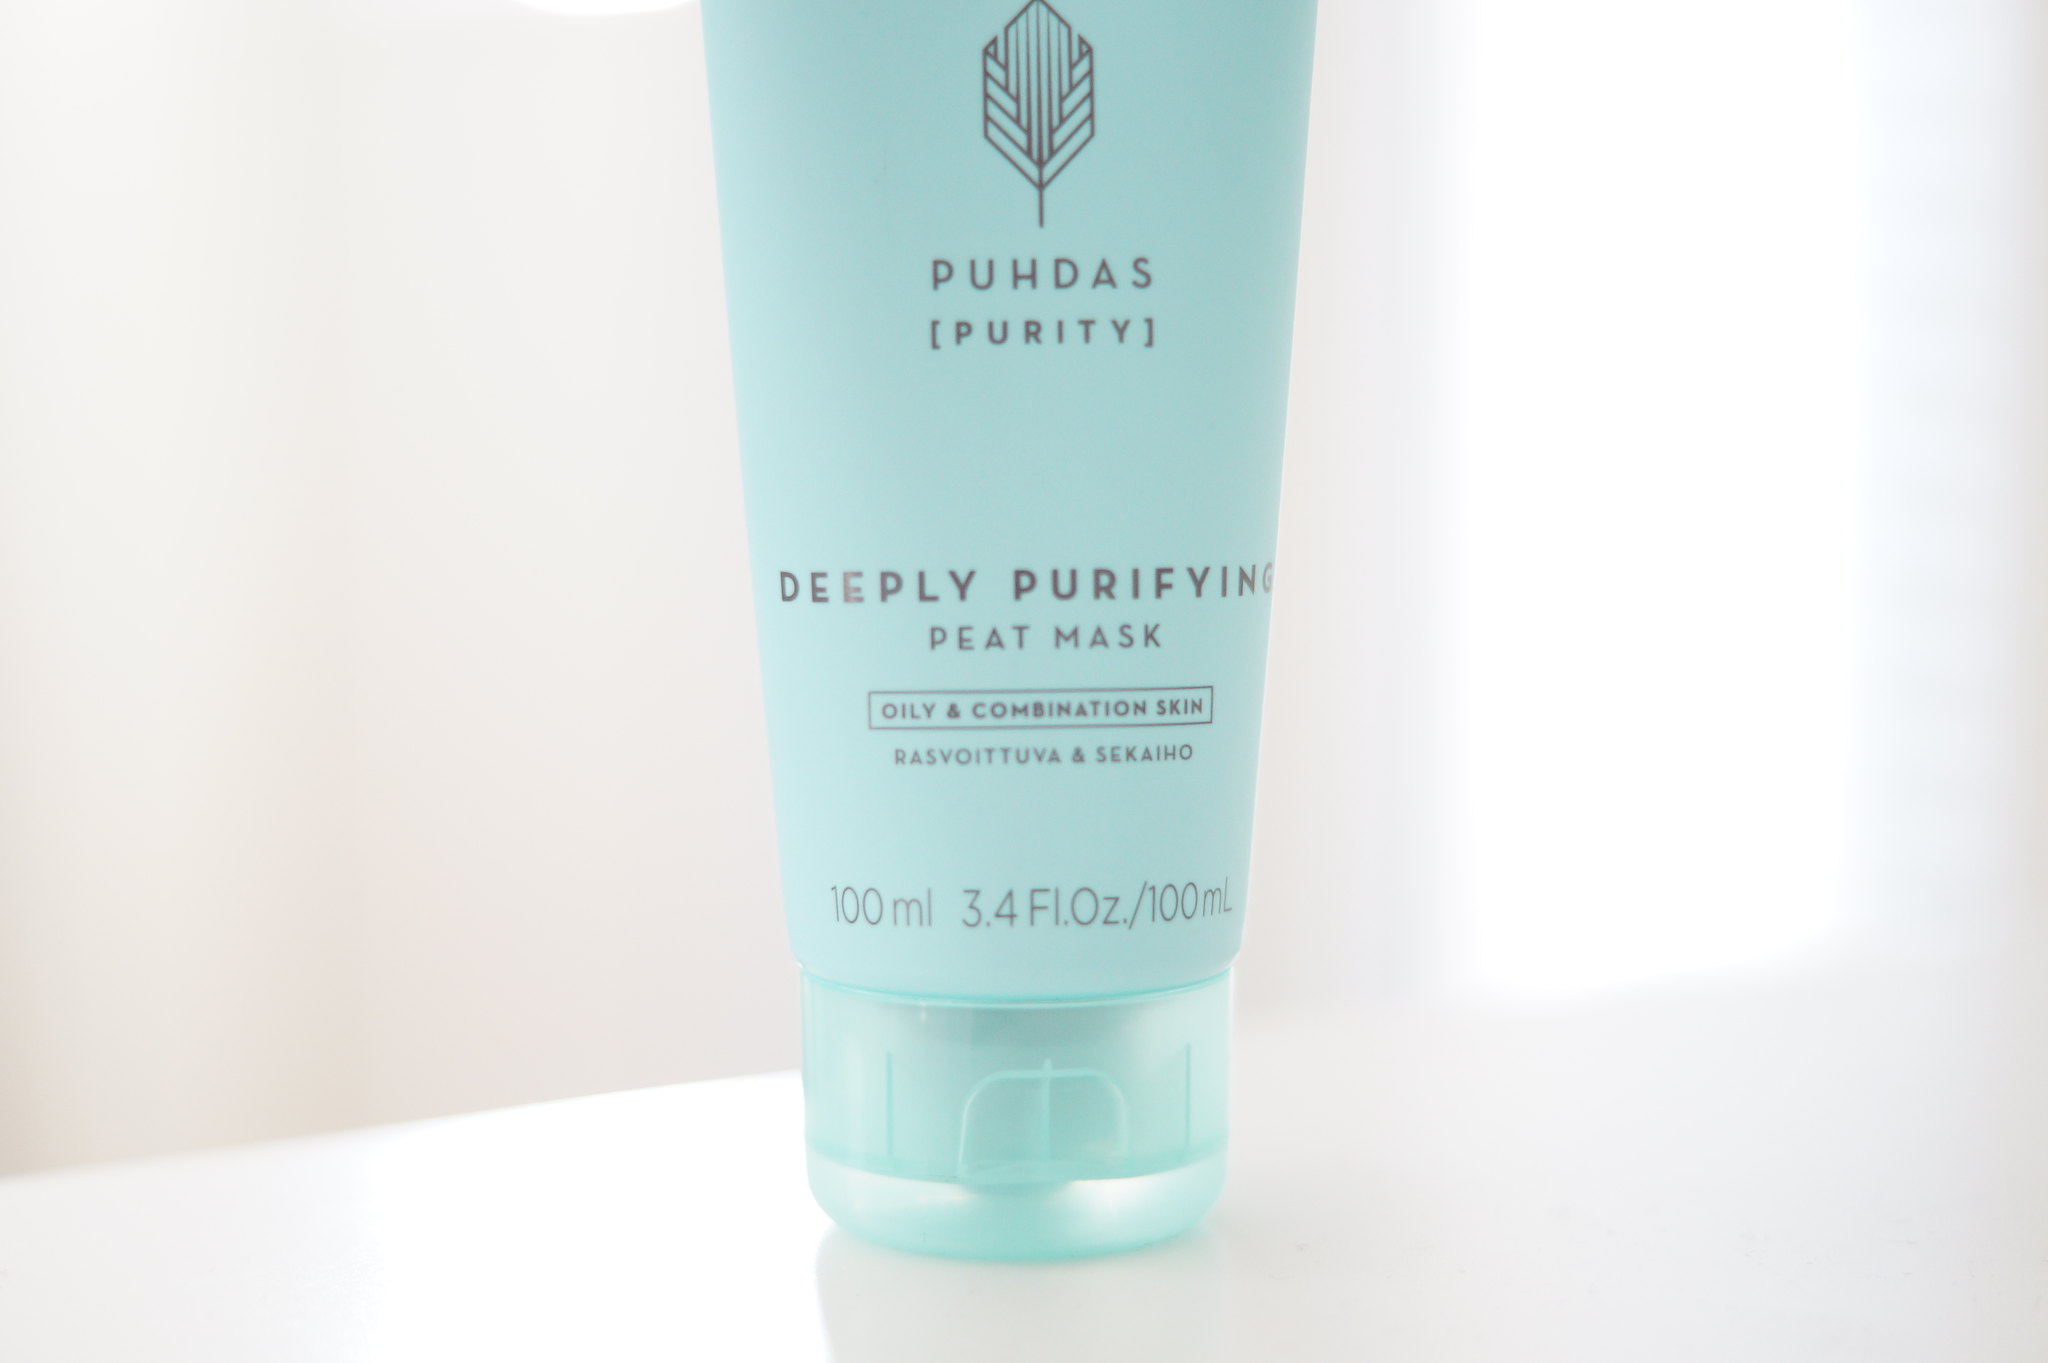 Lumene deeply purifying peat mask blogi